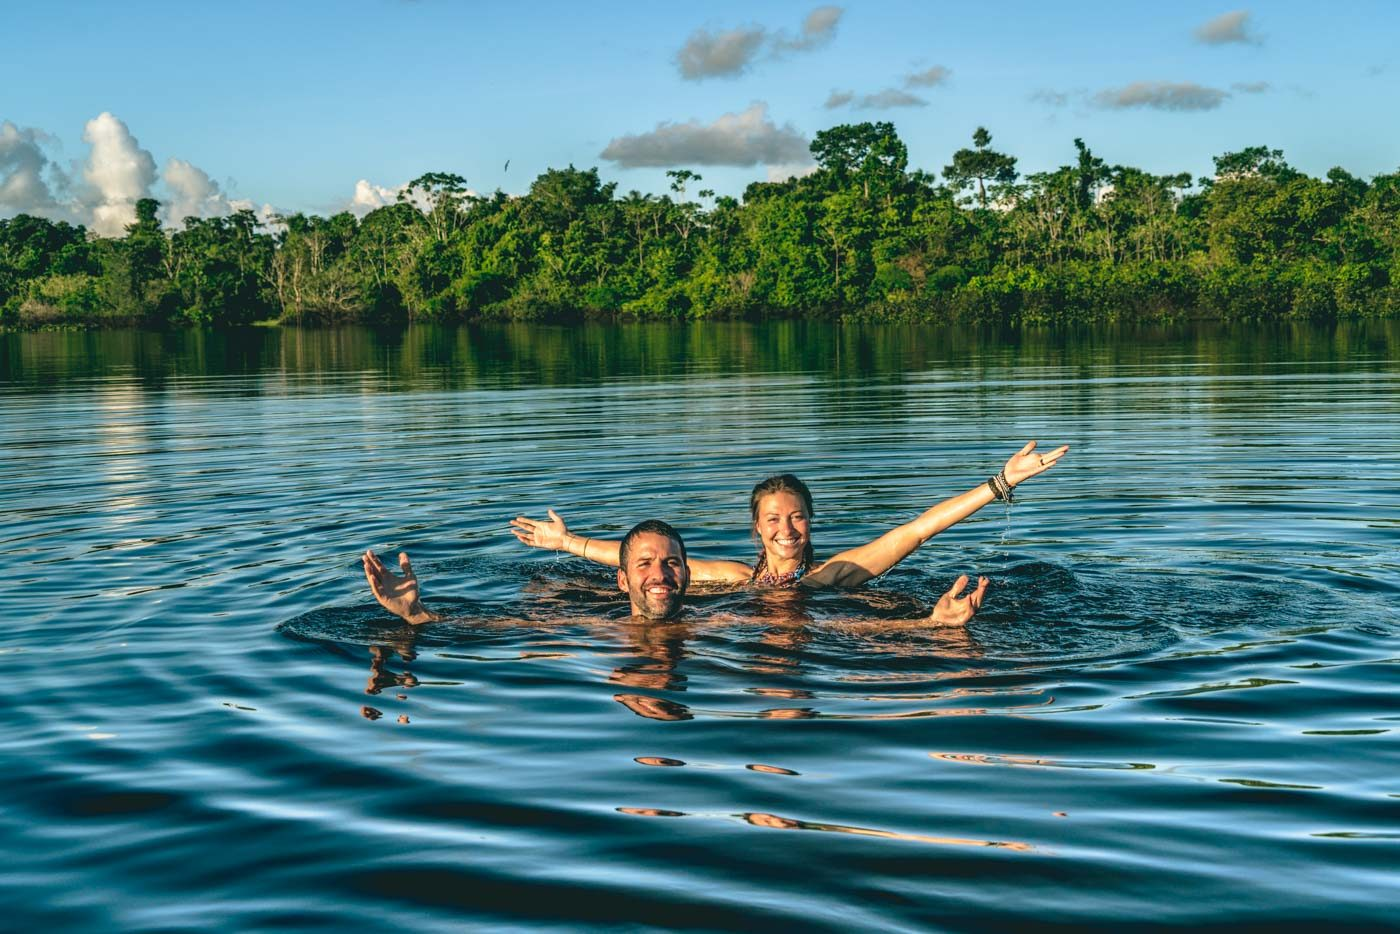 Waiting for dolphins in the Amazon River